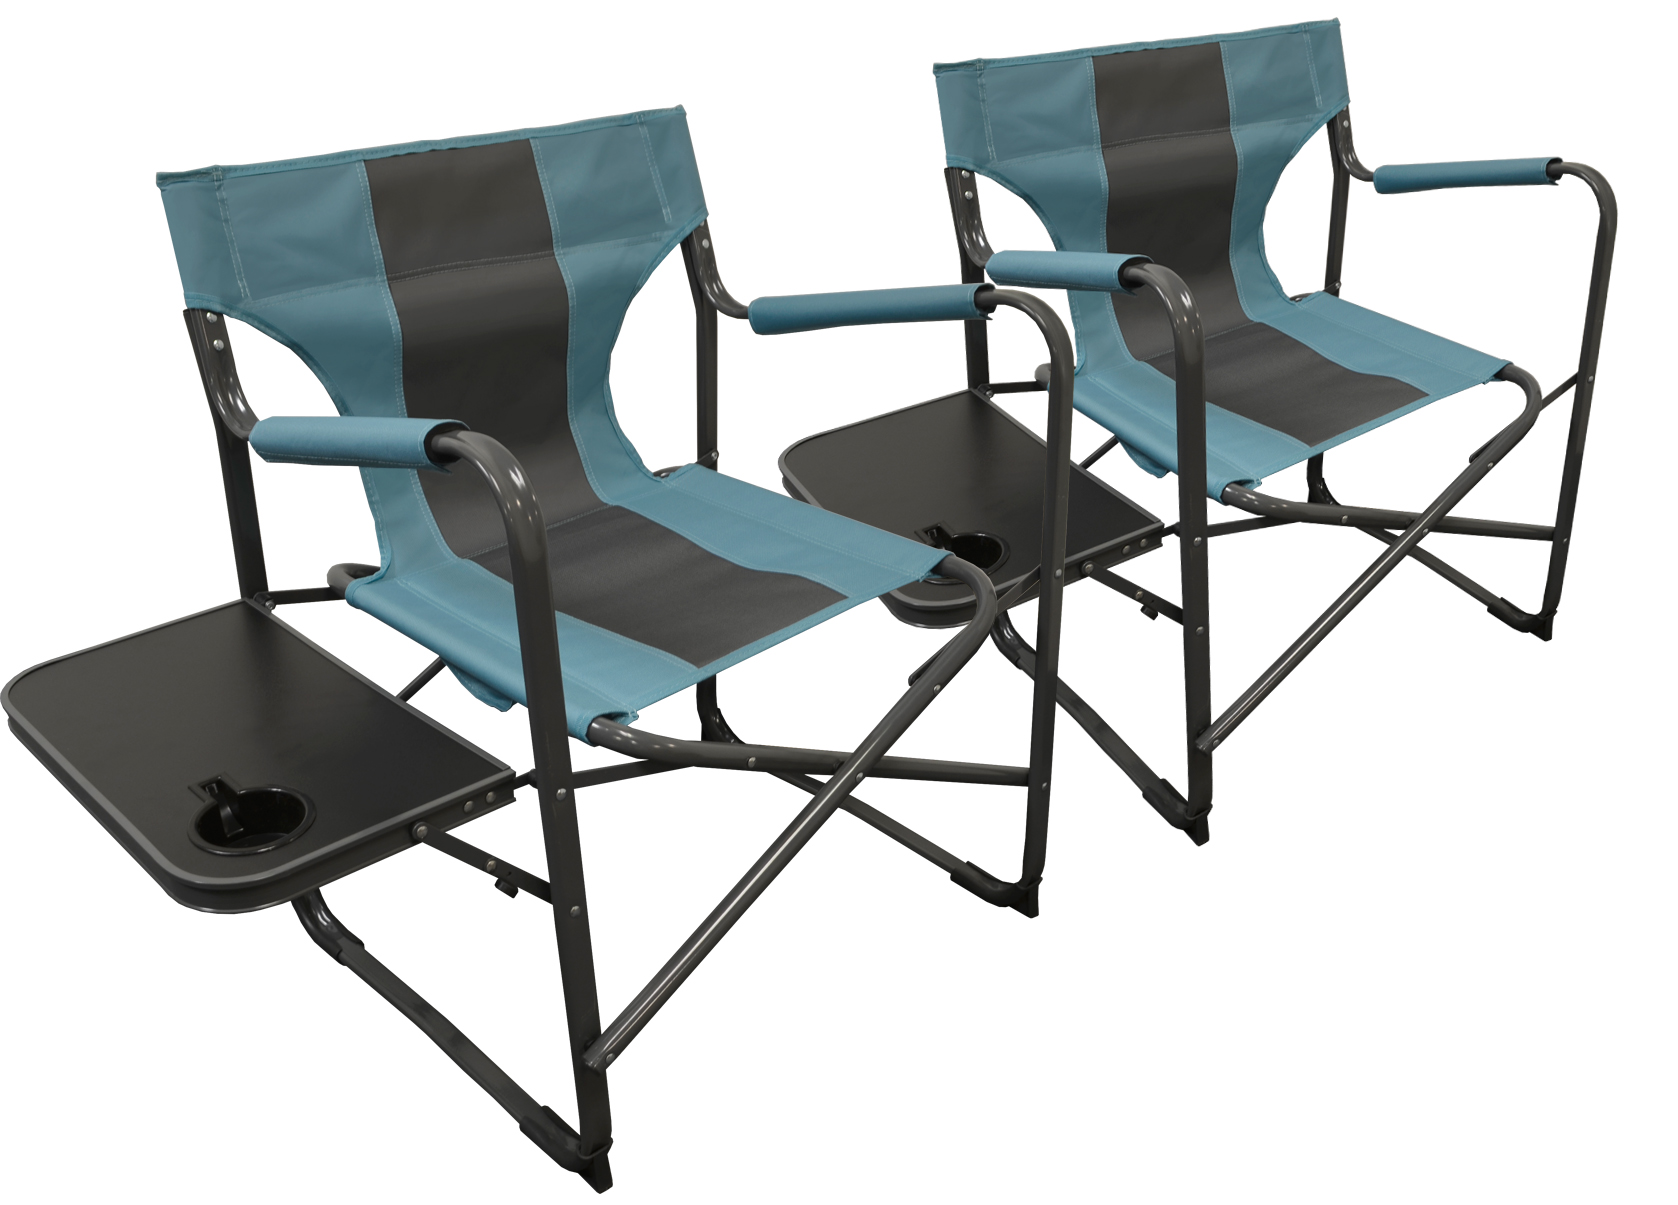 Elite Director's Folding Chair  Teal/Gray   2PACK